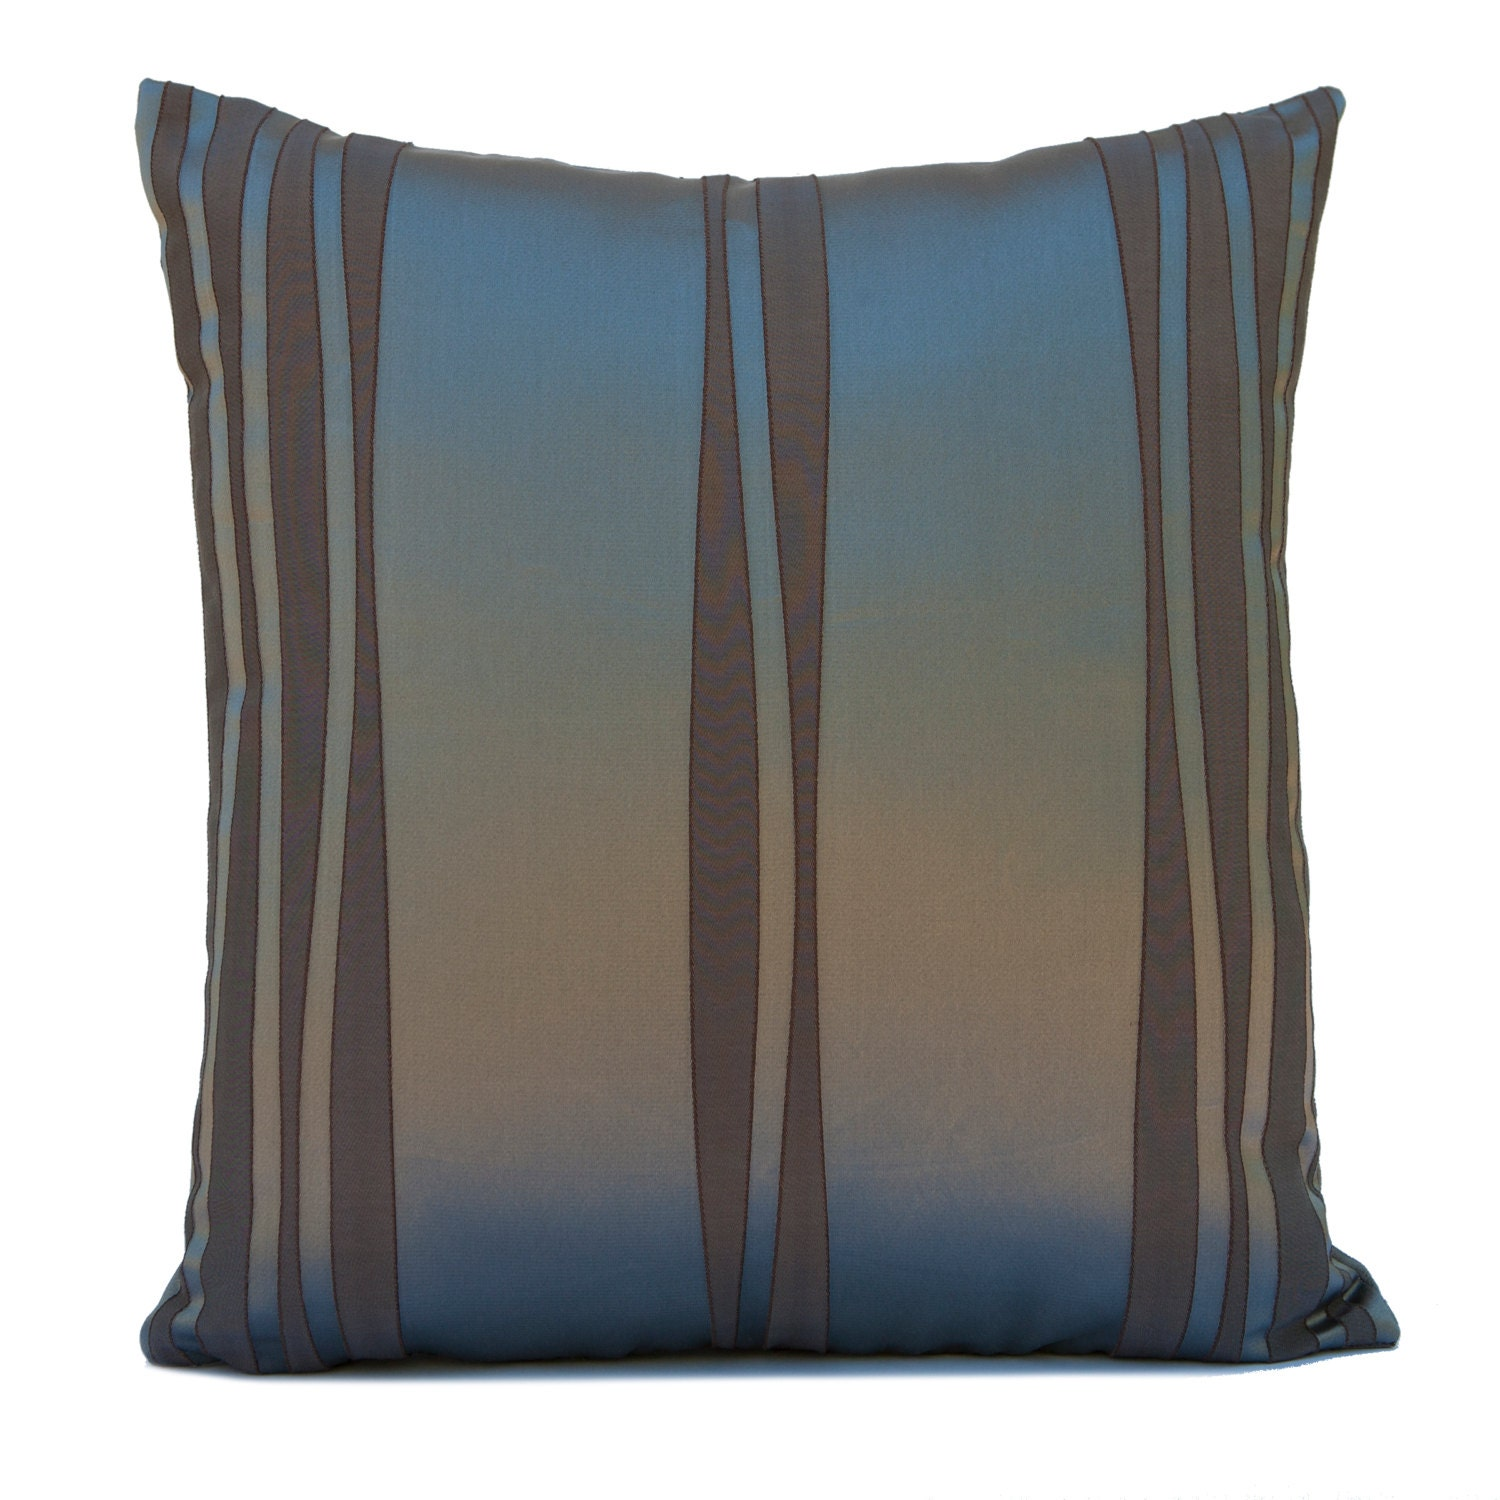 Grey and brown pillow throw pillow cover decorative pillow for Brown and gray throw pillows